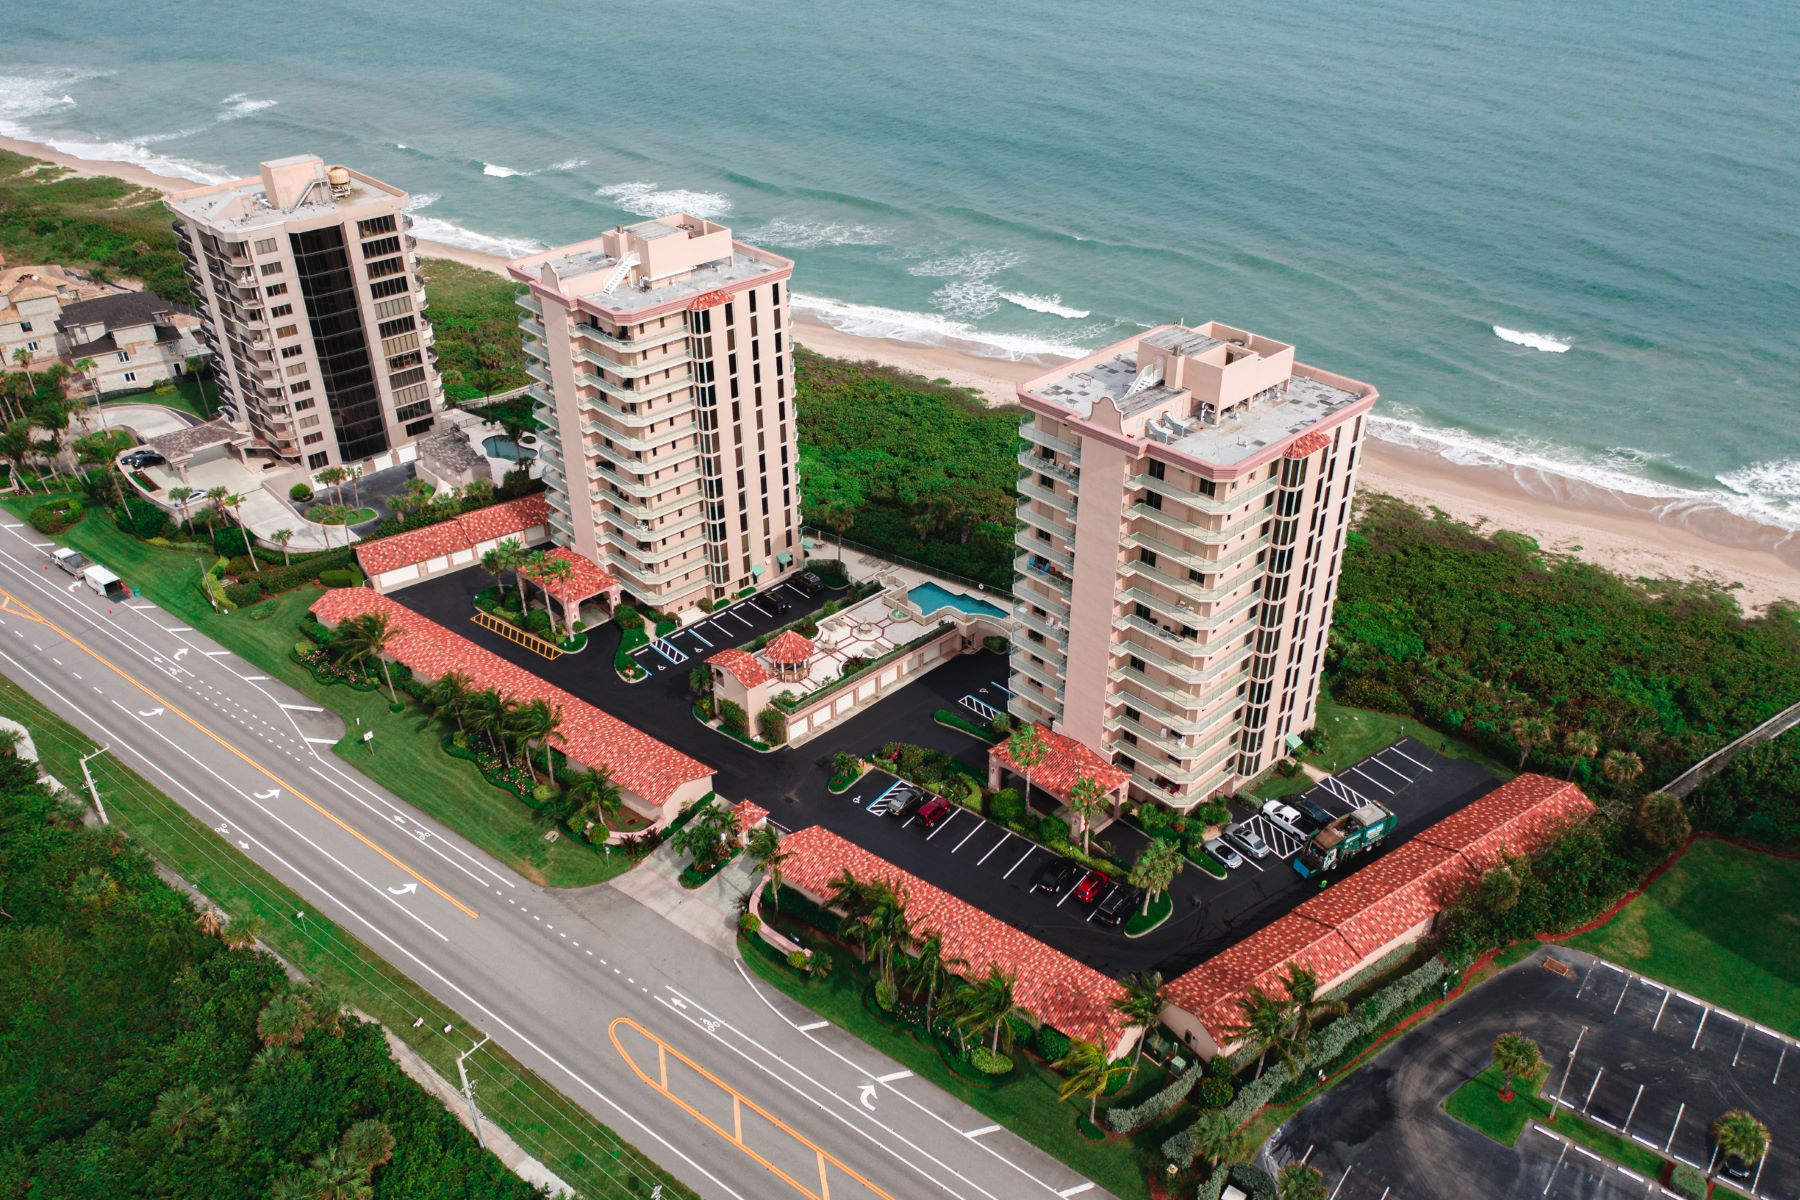 Property для того Продажа на Luxury Oceanfront Condo 4310 N Highway A1A 702S Hutchinson Island, Флорида 34949 Соединенные Штаты